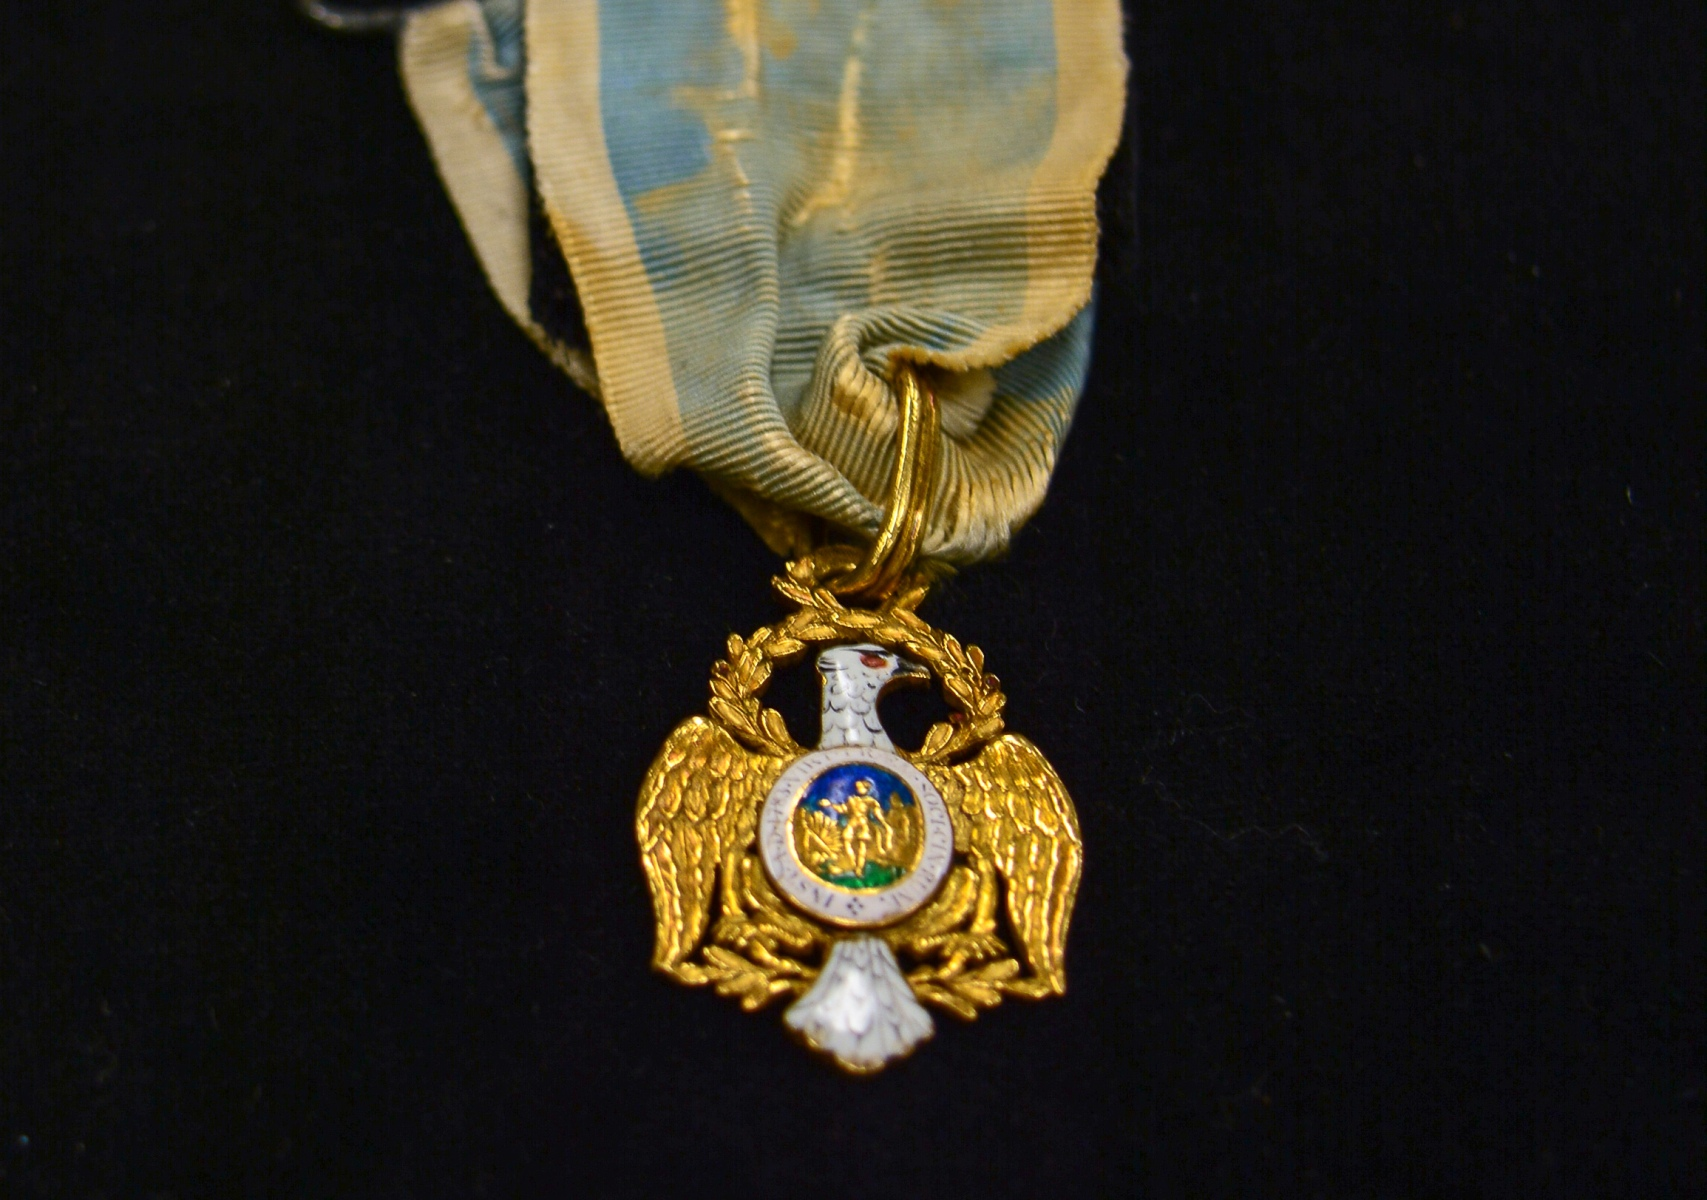 """A Society of the Cincinnati medal with eagle insignia. The Society of the Cincinnati was formed after the Revolutionary War. The medal is part of the """"Year of Hamilton"""" exhibit at the Museum of the American Revolution. Credit: MoAR"""